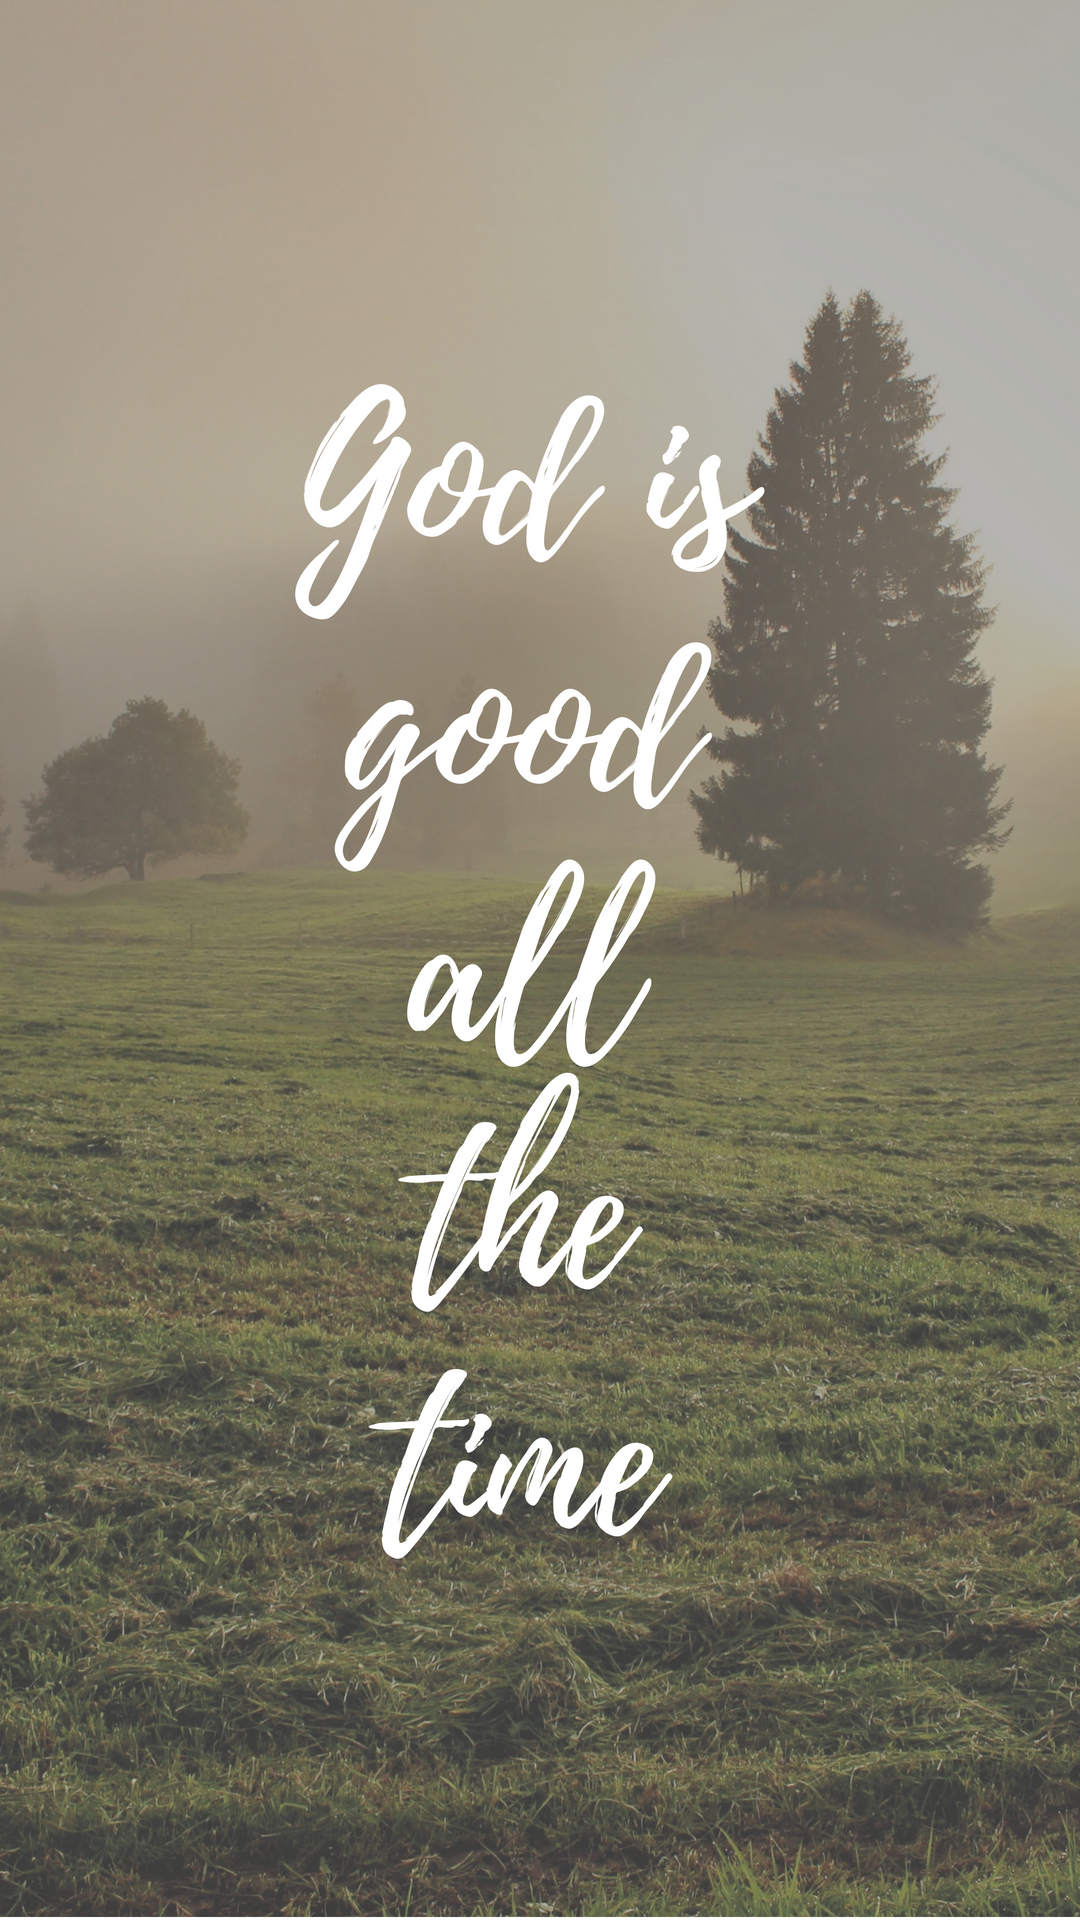 Deus é Bom Plano De Fundo God Is Good Tumblr Frases Pinterest